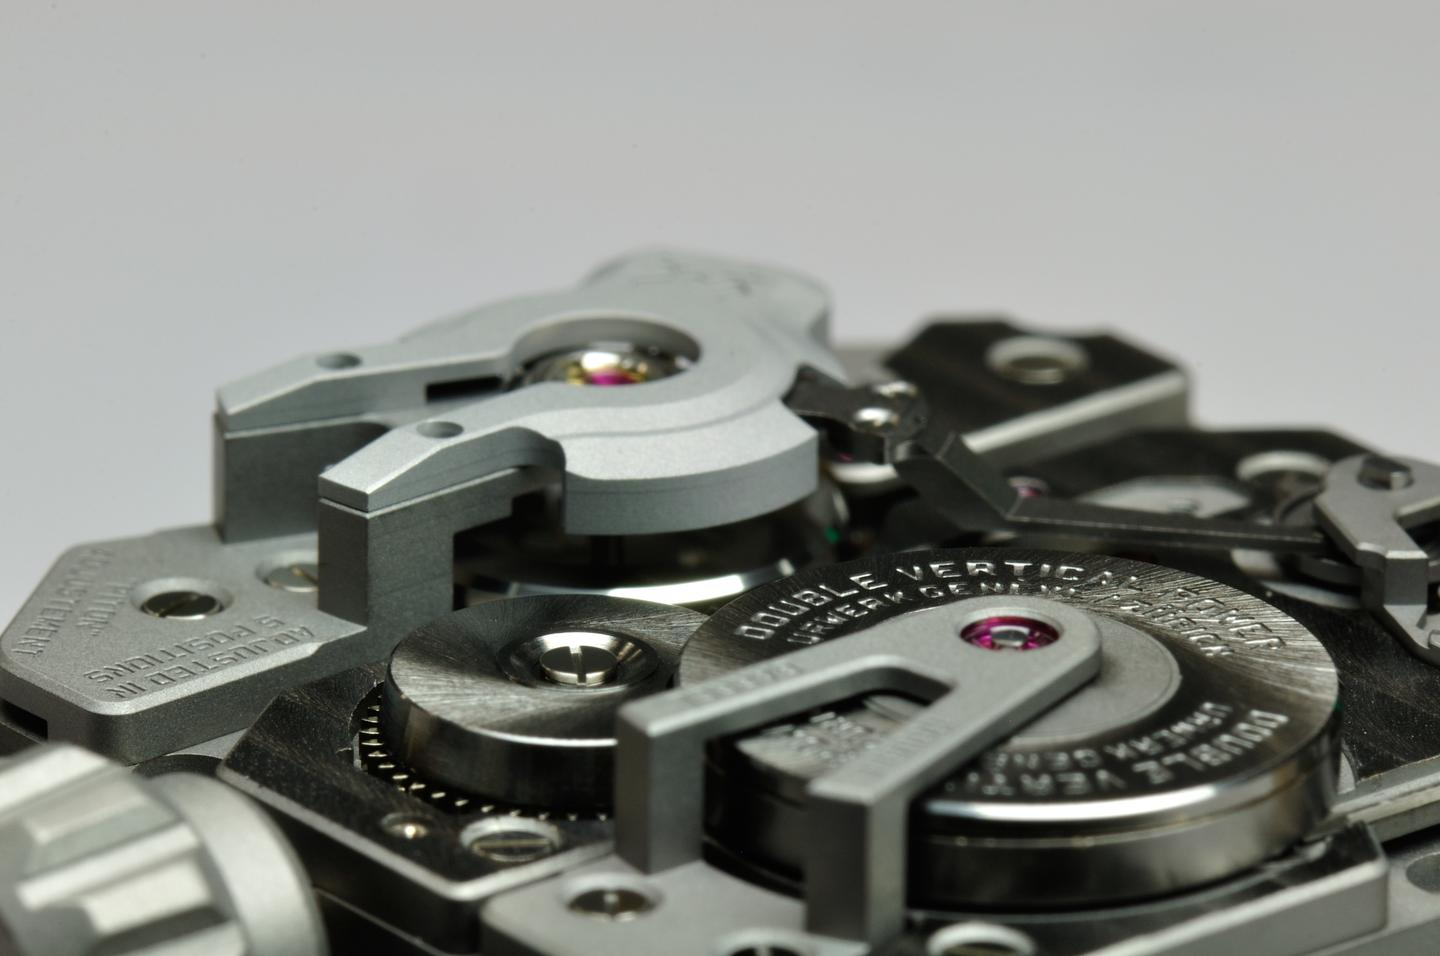 Instead of a battery, the watch uses a hand-turned Maxon generator for the electronics along with large double mainspring barrels to provide up to 80 hours of reserve power